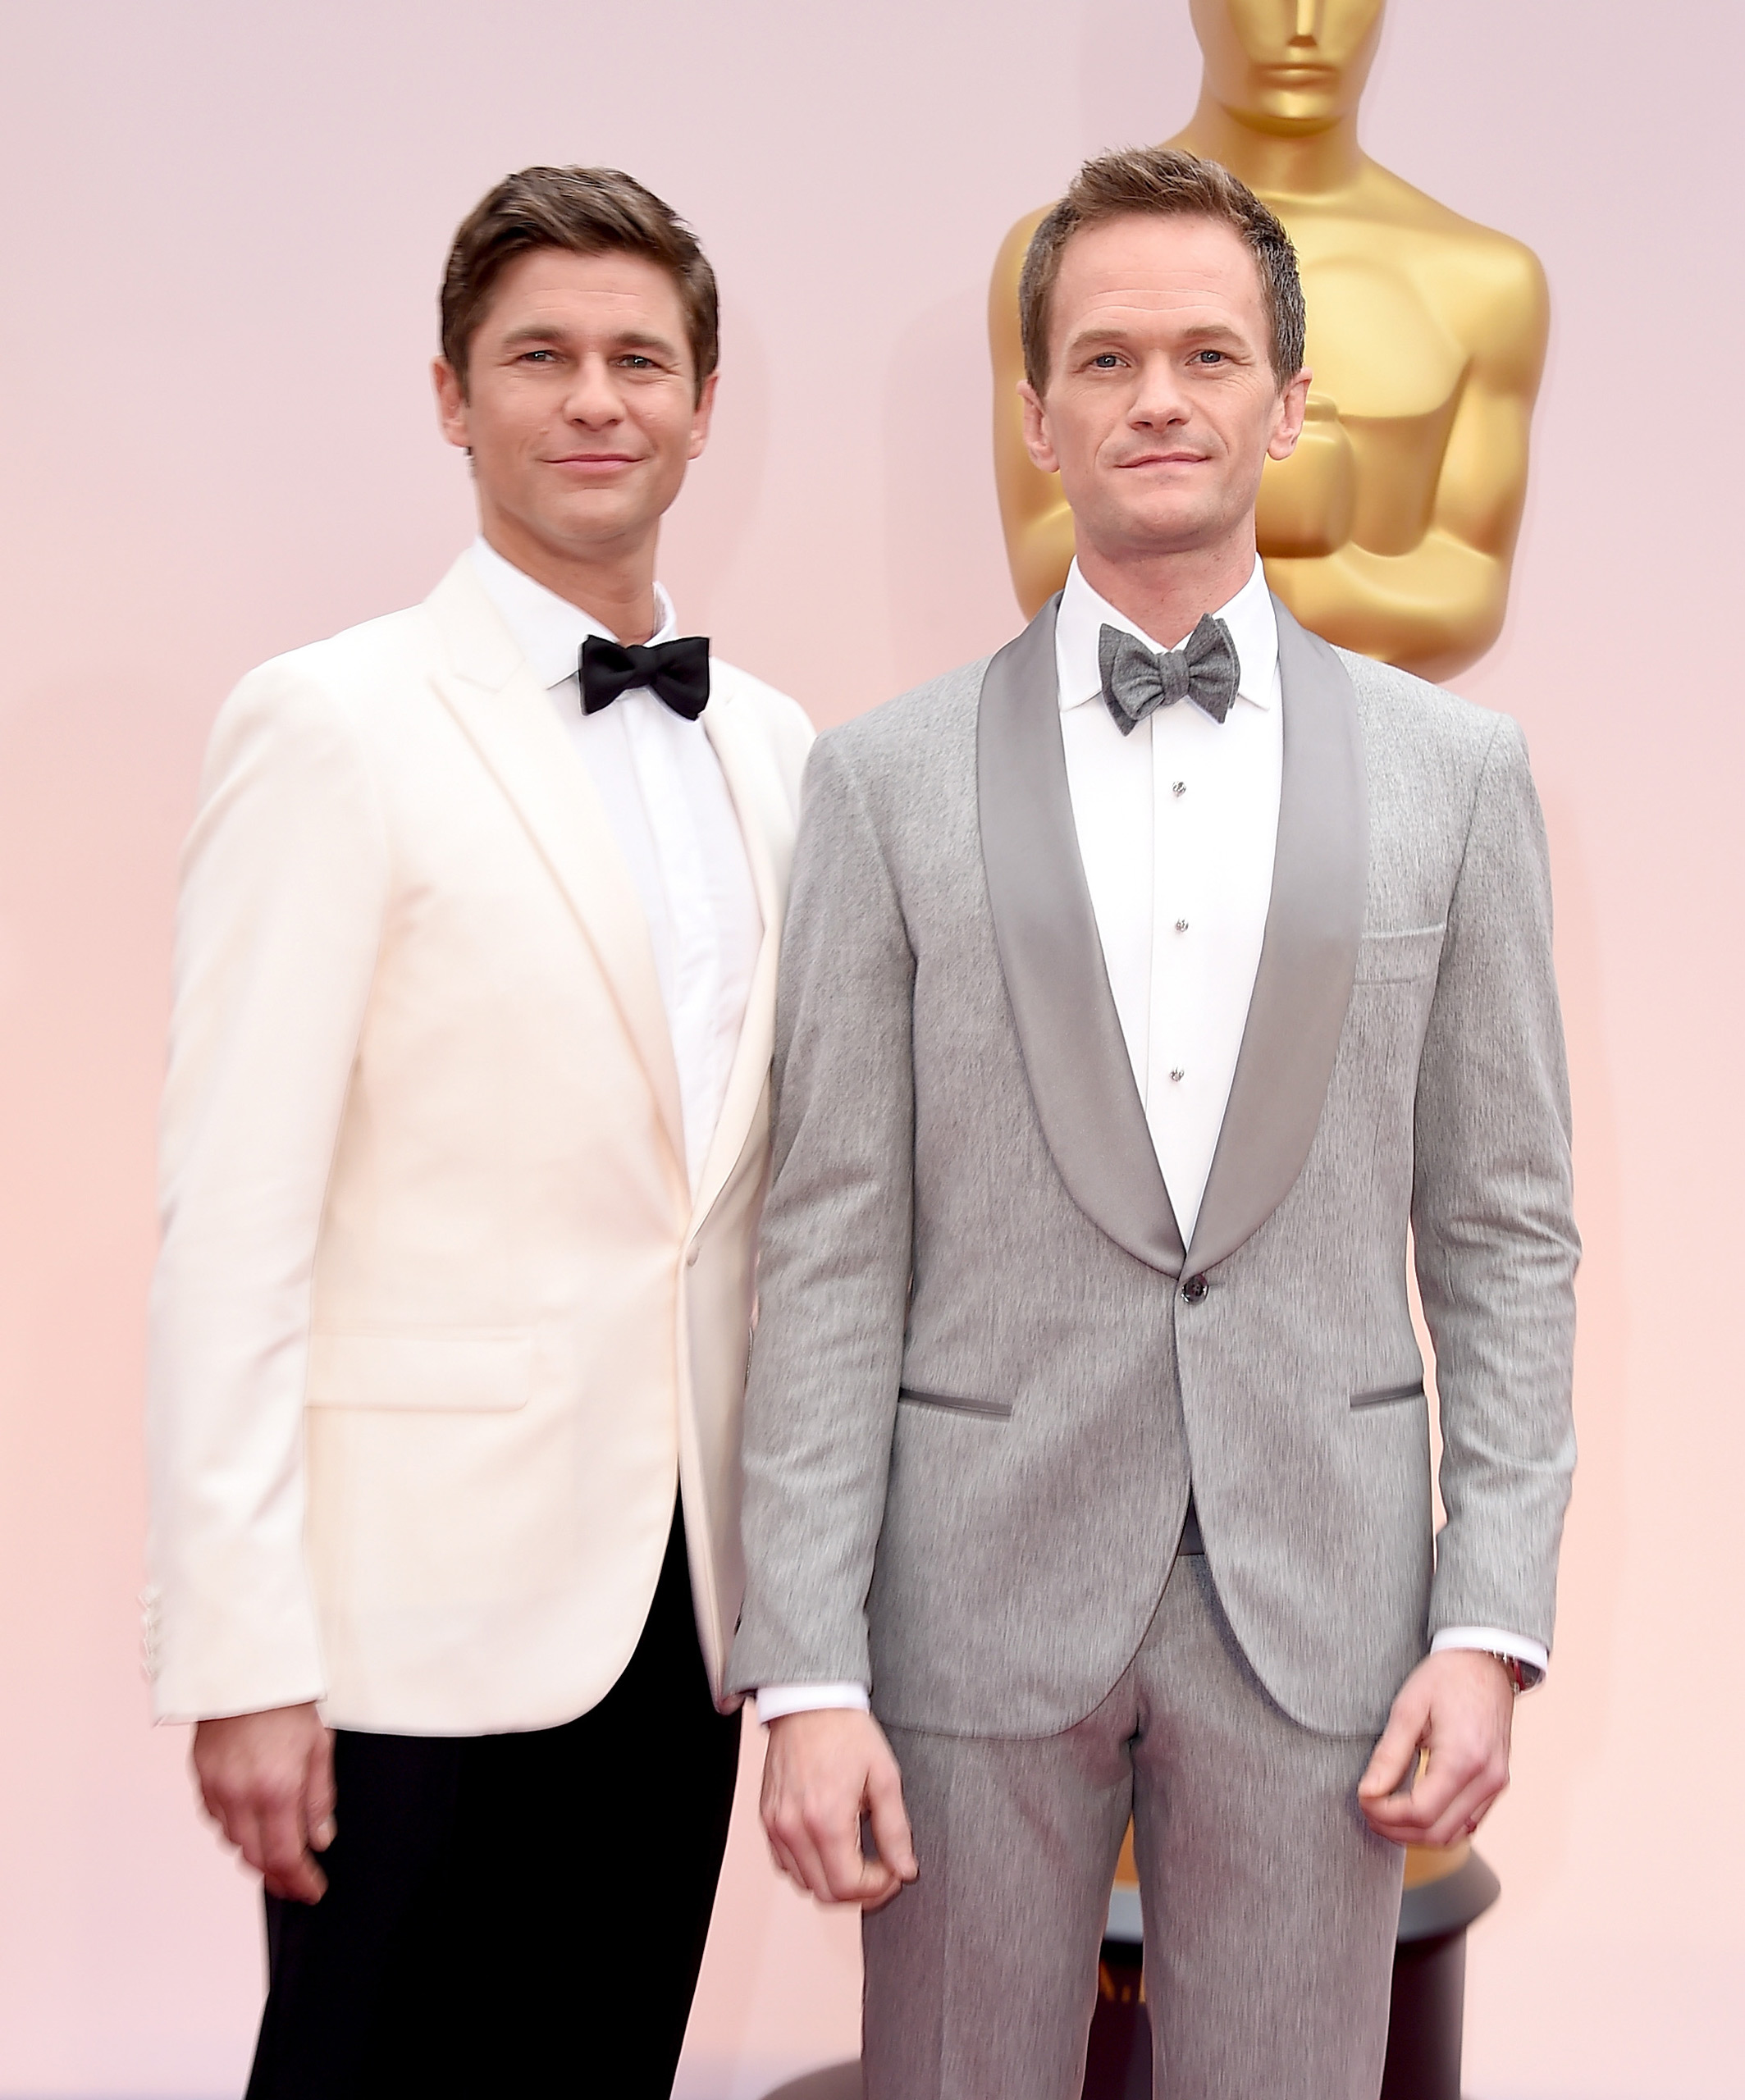 Neil Patrick Harris, right, and David Burtka attendsthe 87th Annual Academy Awards on Feb. 22, 2015 in Hollywood, Calif.